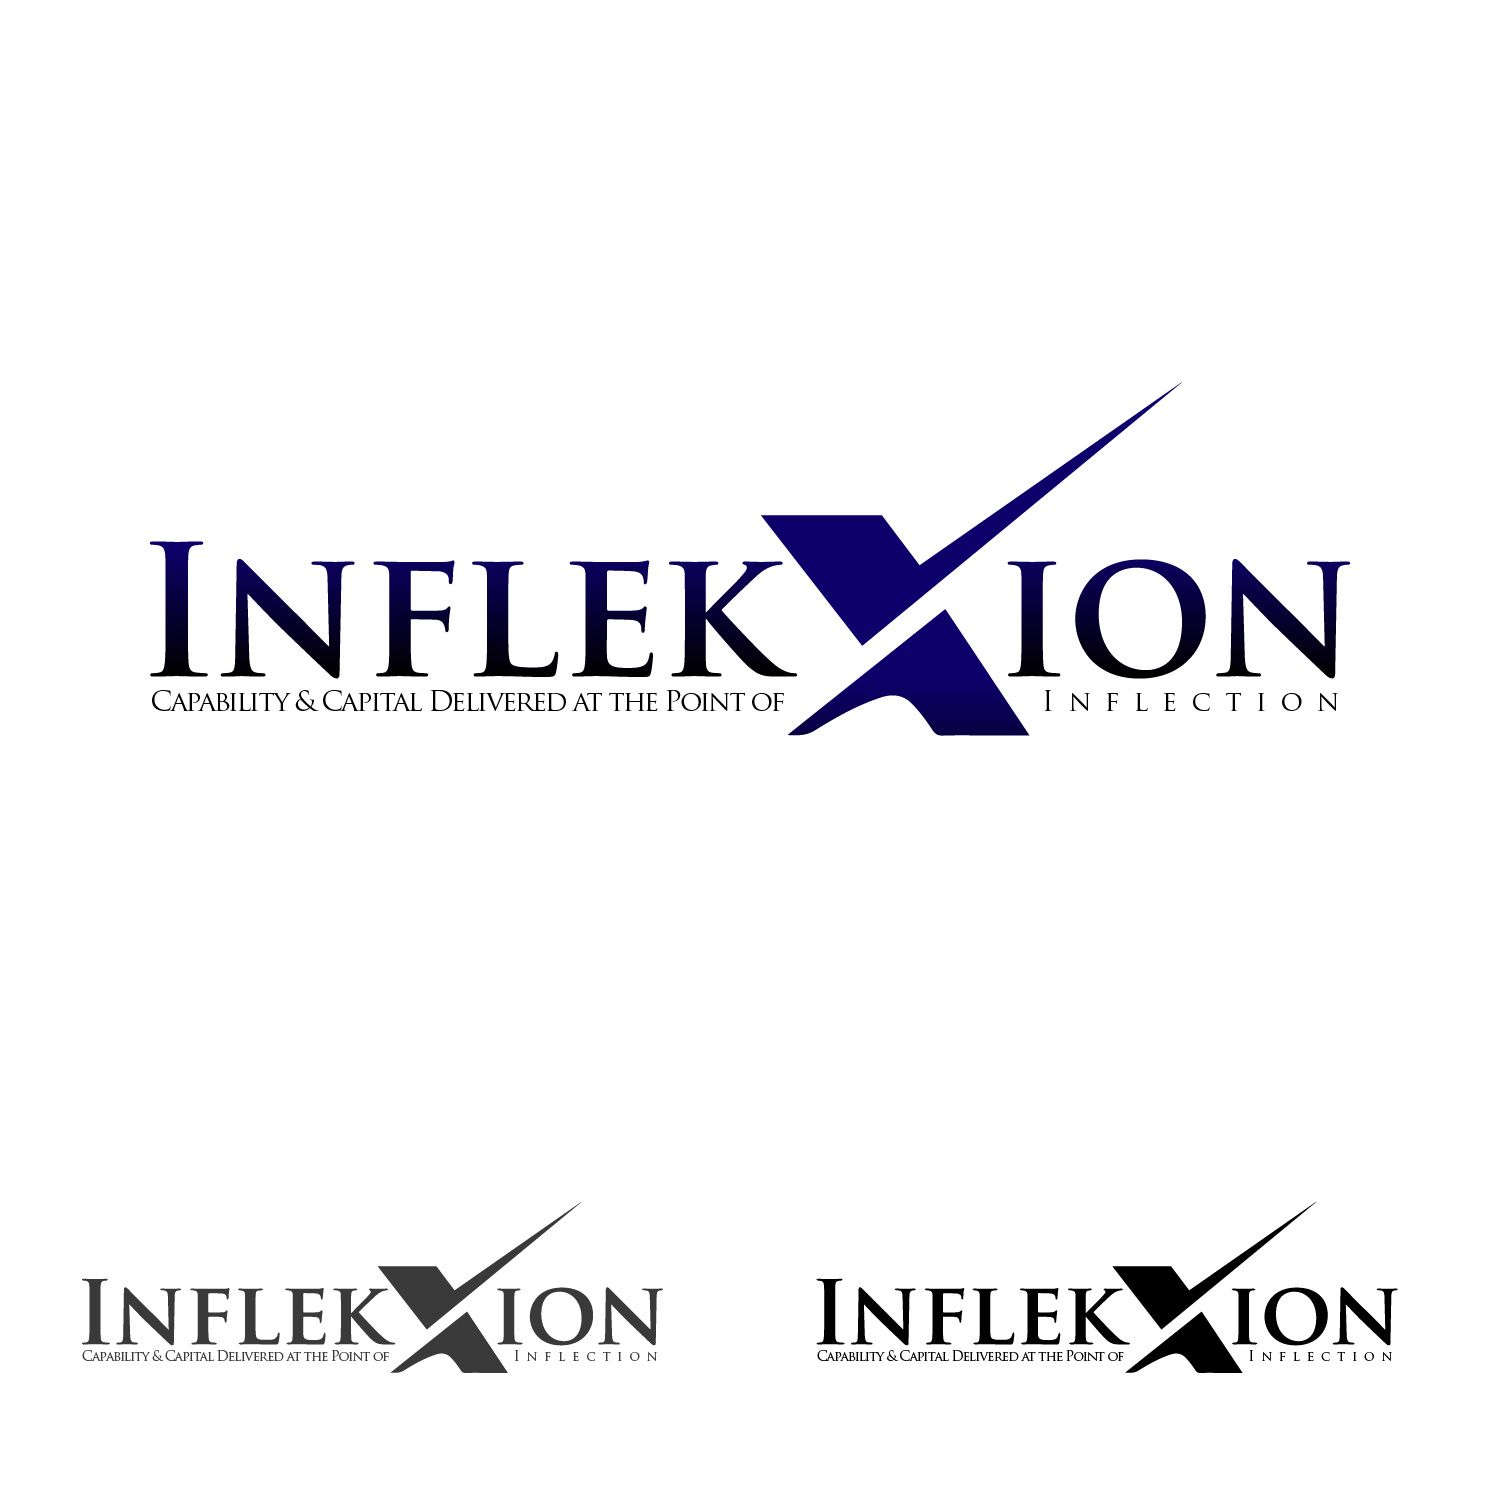 Logo Design by lagalag - Entry No. 55 in the Logo Design Contest Professional Logo Design for Inflekxion.